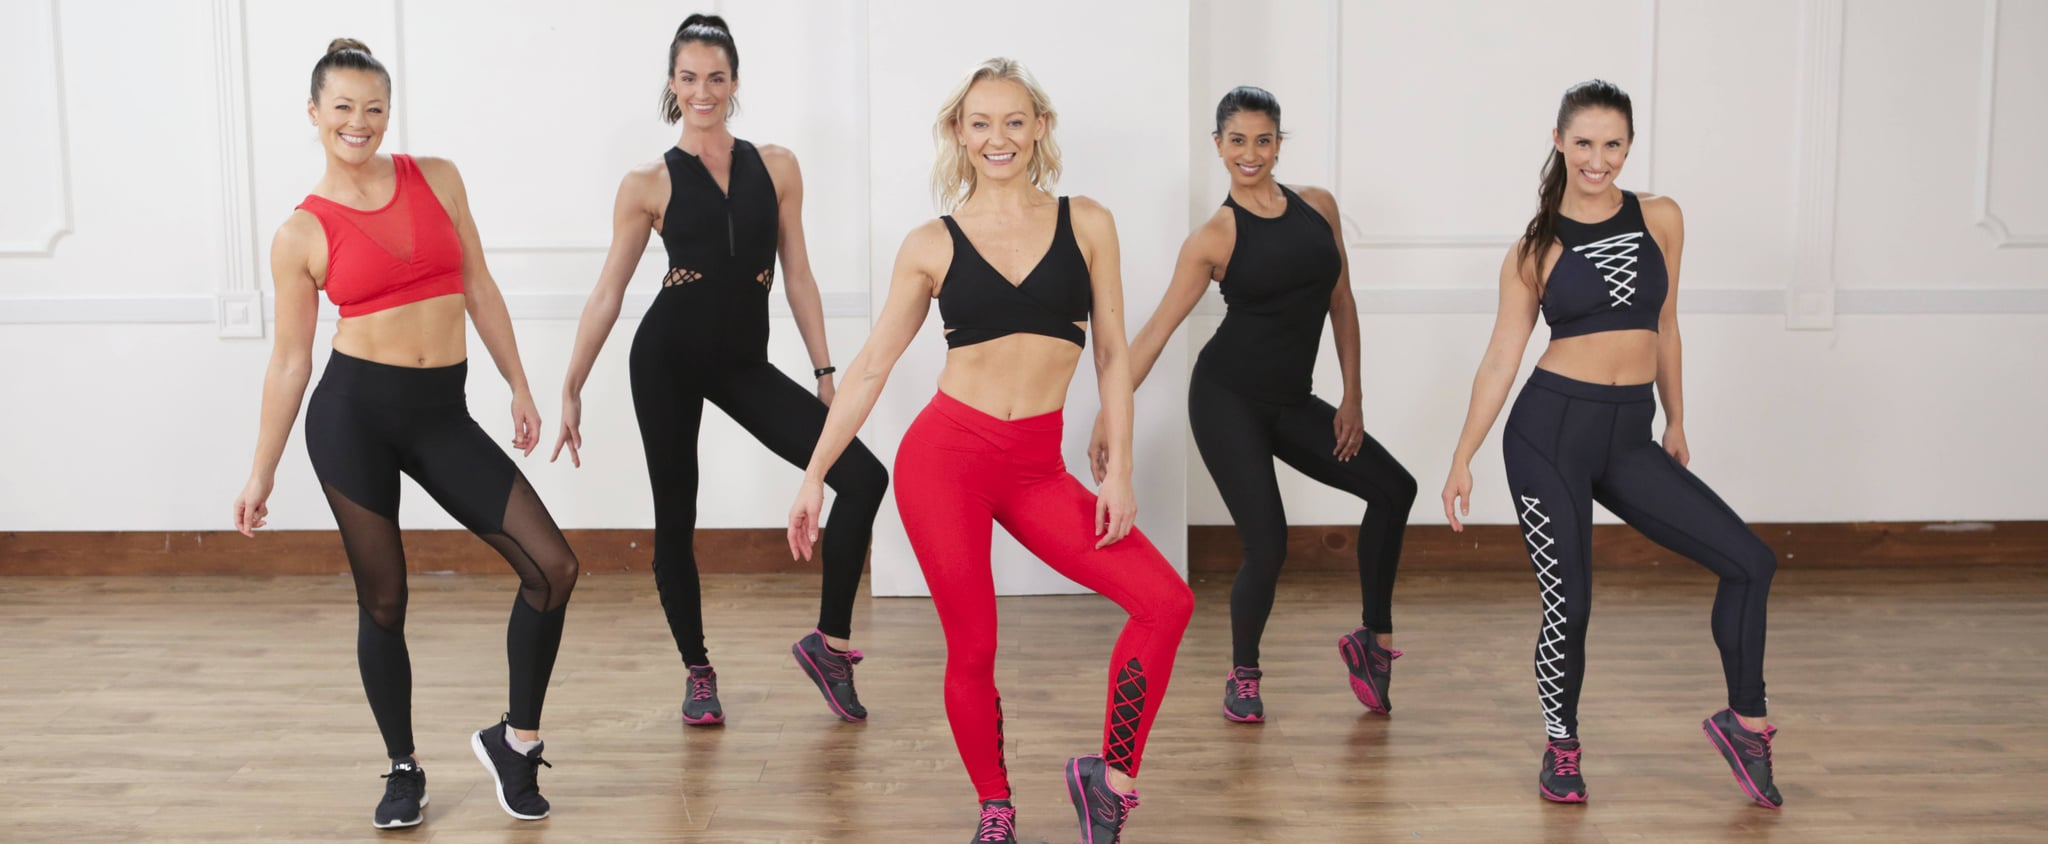 45-Minute Dance Cardio Workout